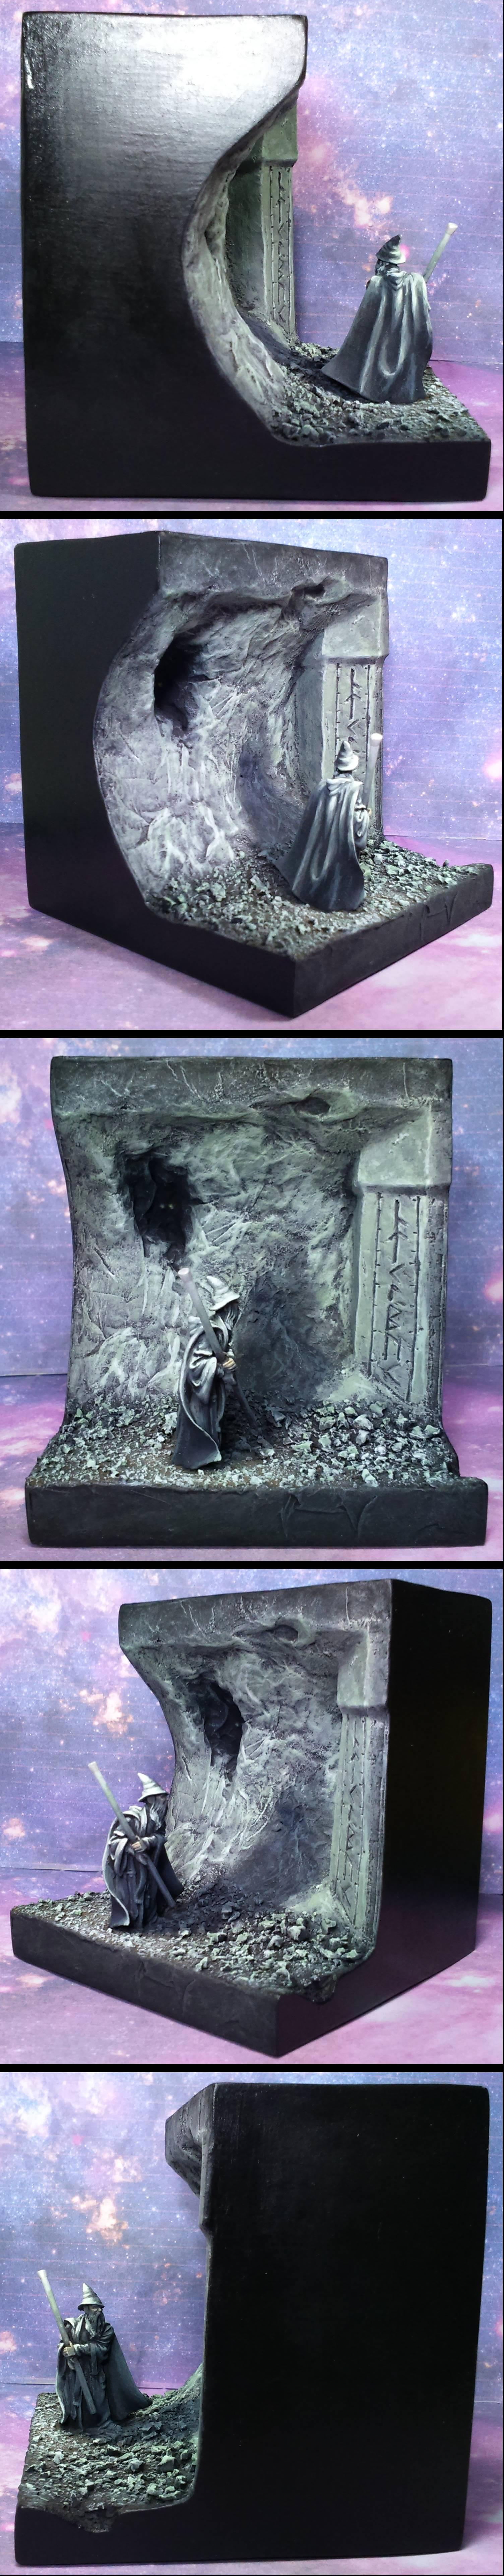 Diorama, Gandalf The Grey, Lord Of The Rings, Moria